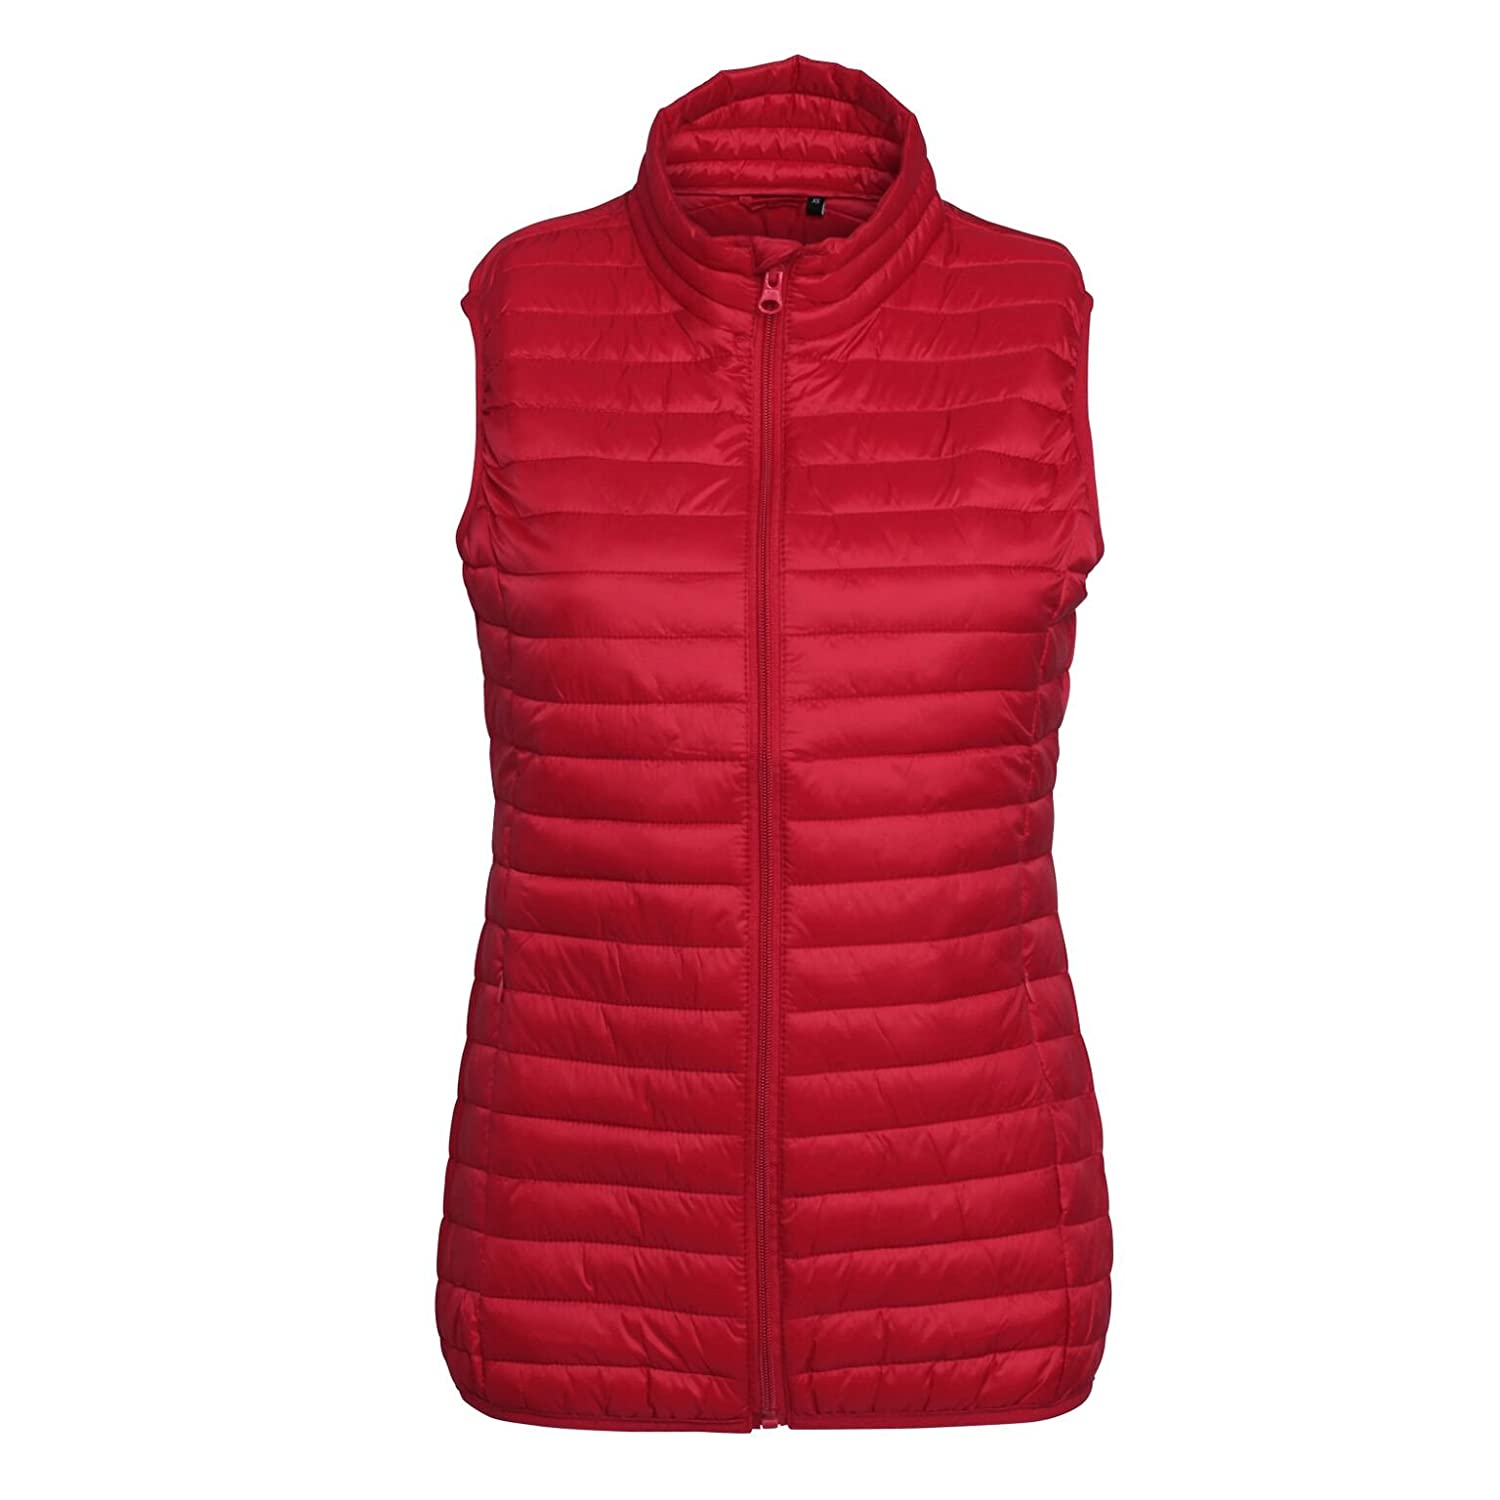 2786 Women's Full Zip Lightweight Padded Tribe Fineline Quilted Gilets XS-2XL